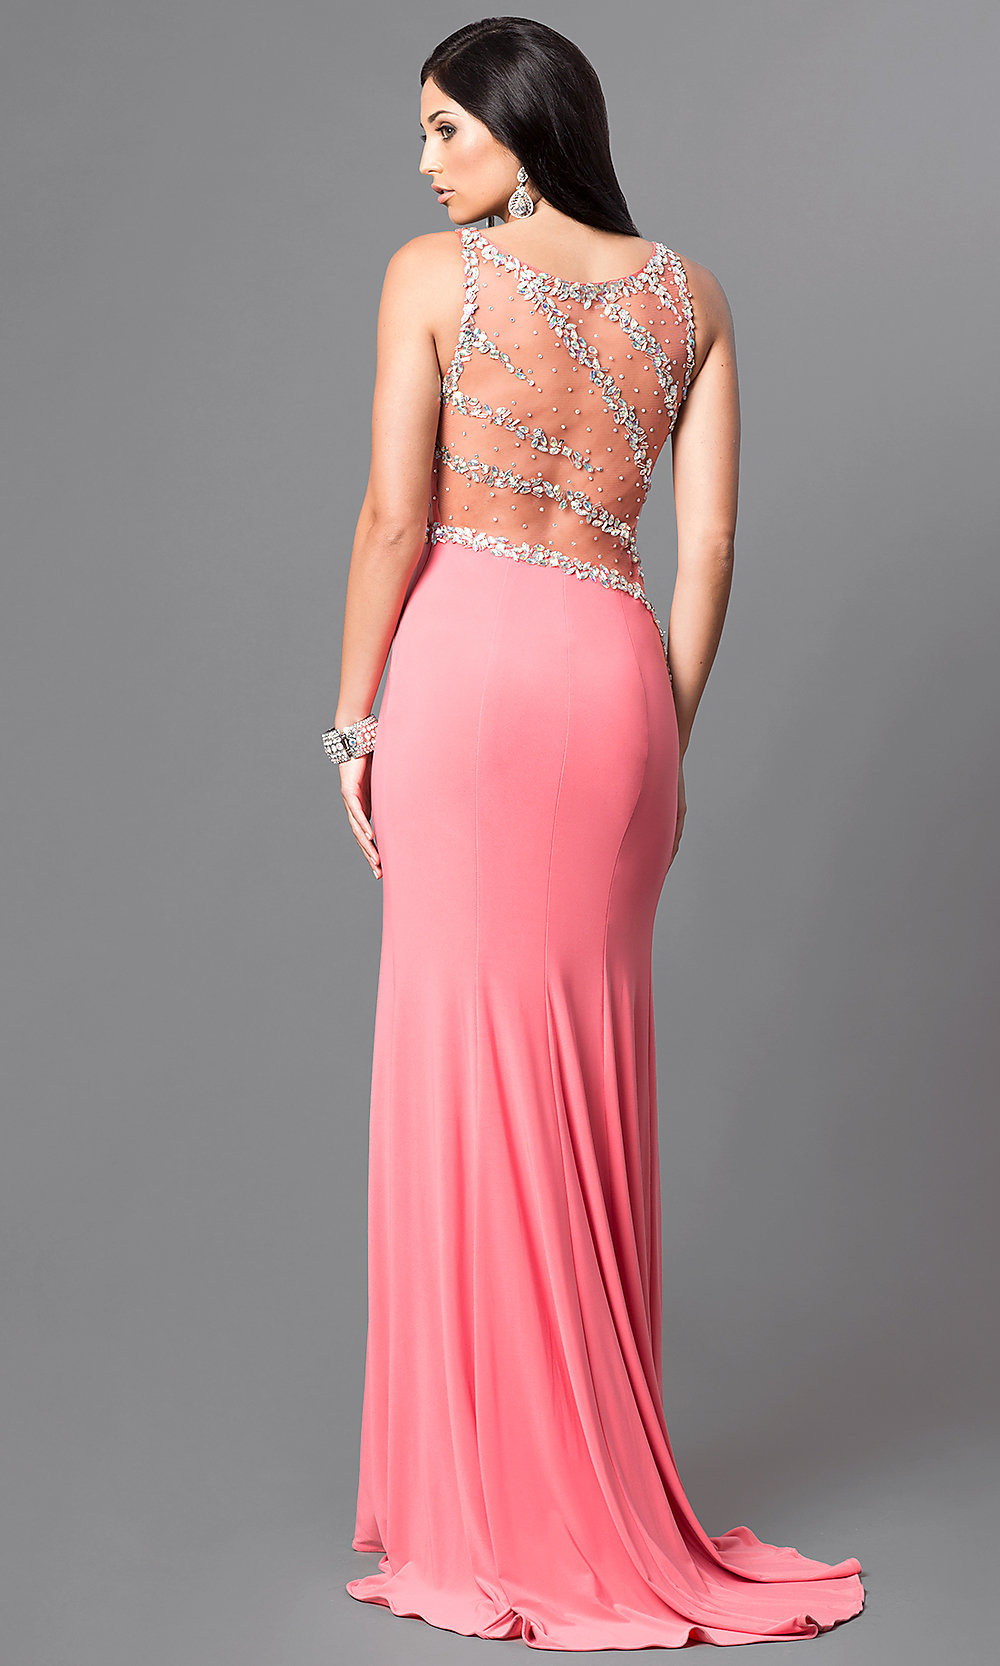 Sleeveless Coral Pink Long Formal Gown - PromGirl